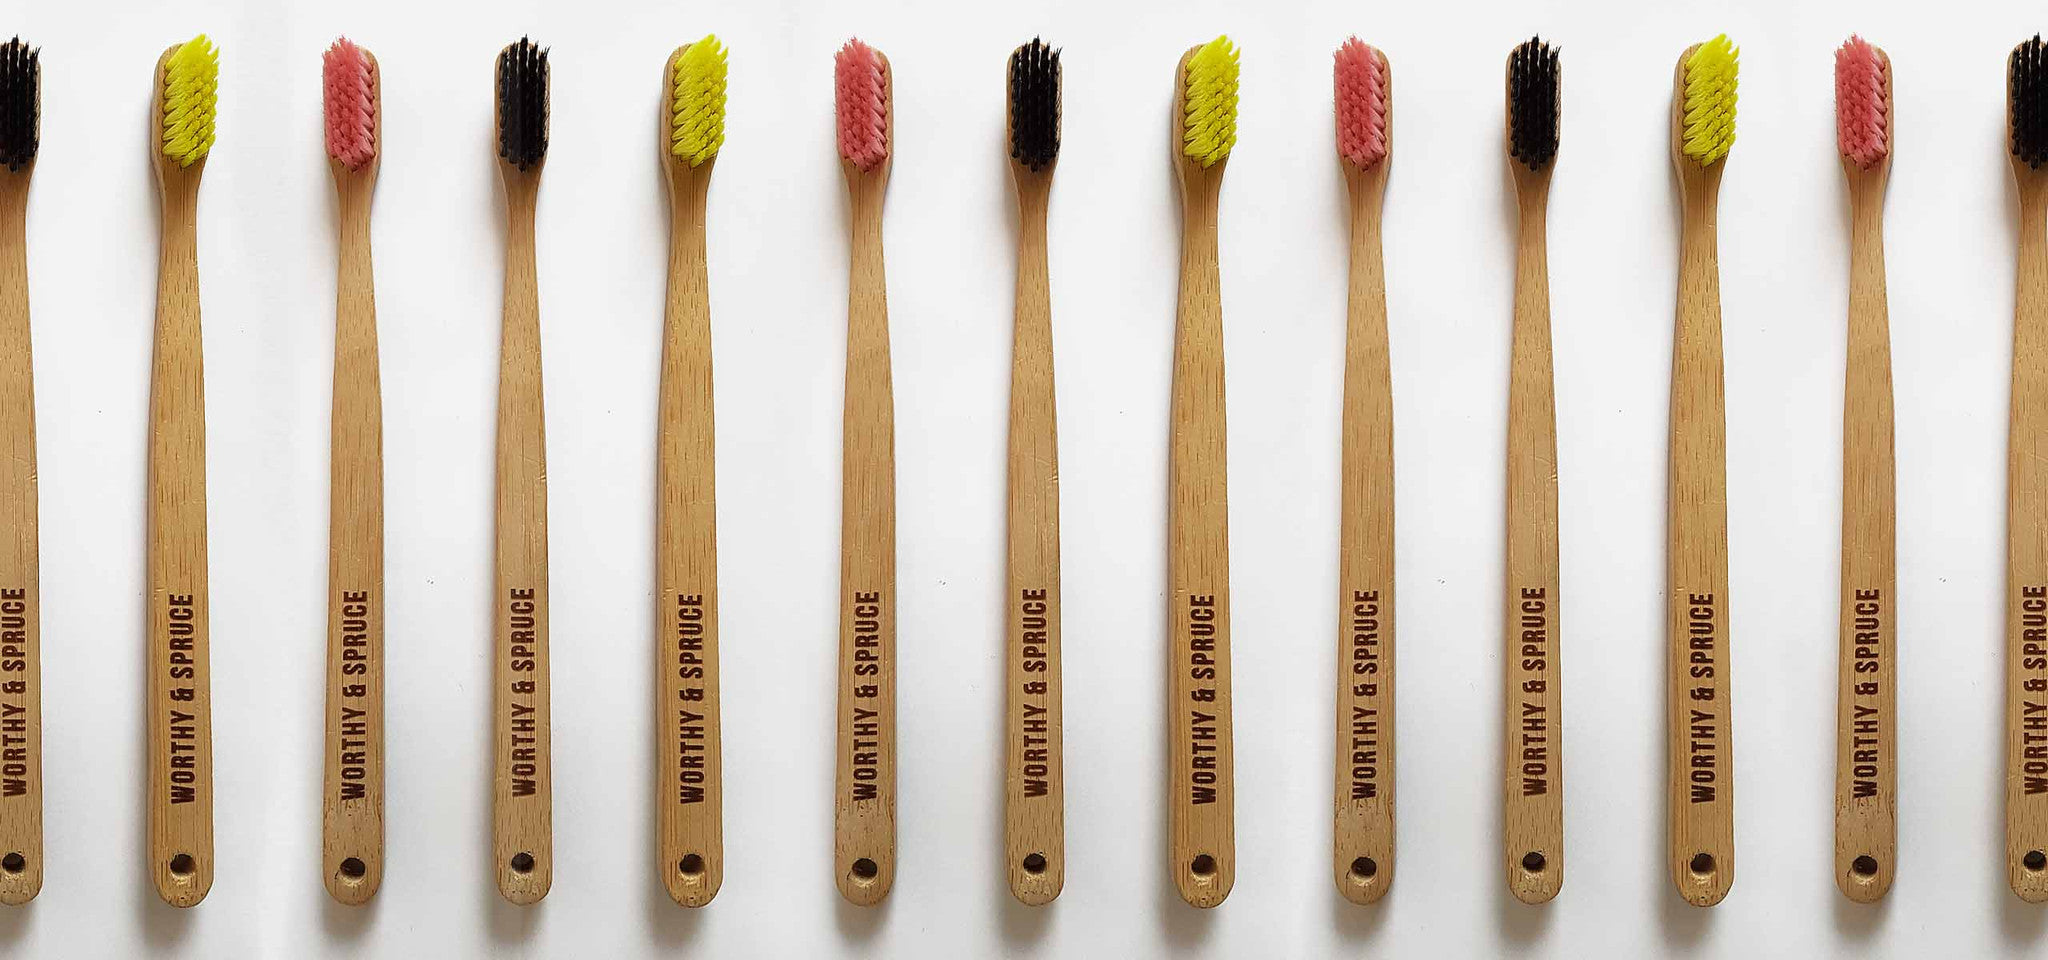 Sprucebrush Eco Toothbrush from Worthy & Spruce